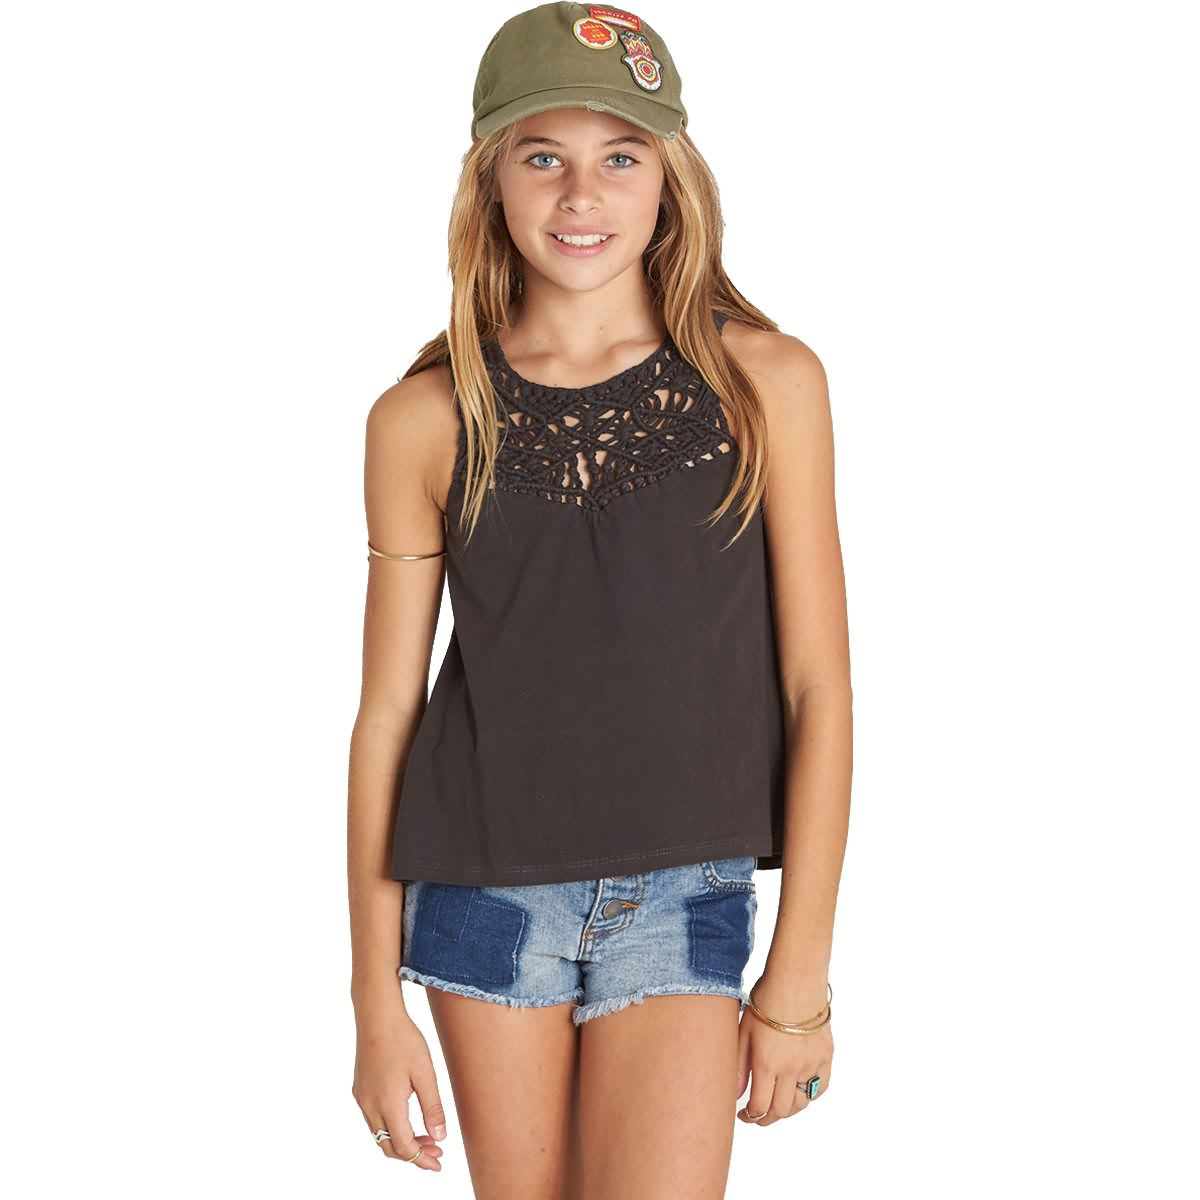 Billabong Second Look Youth Girls Top Shirts-G908LSEC